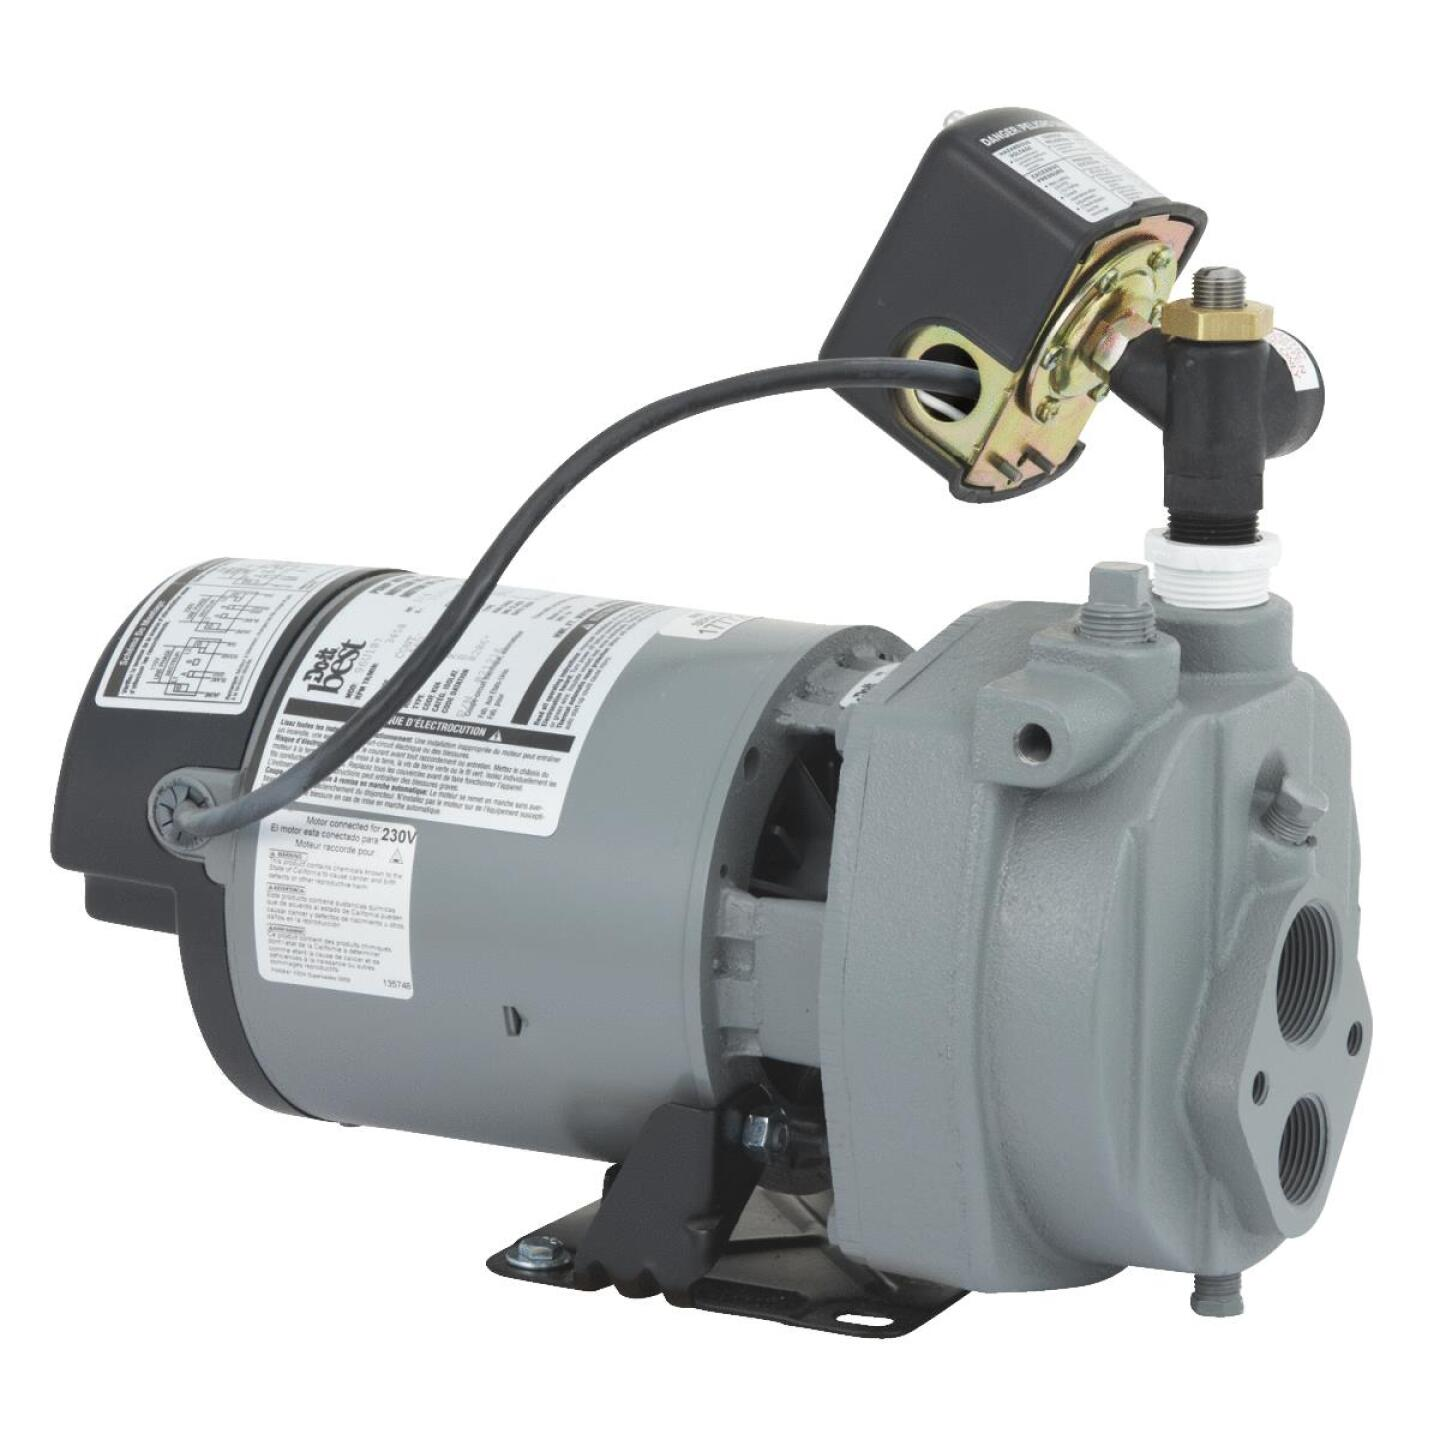 Do it Best 3/4 HP Cast Iron Water Conventional Well Jet Pump Image 1